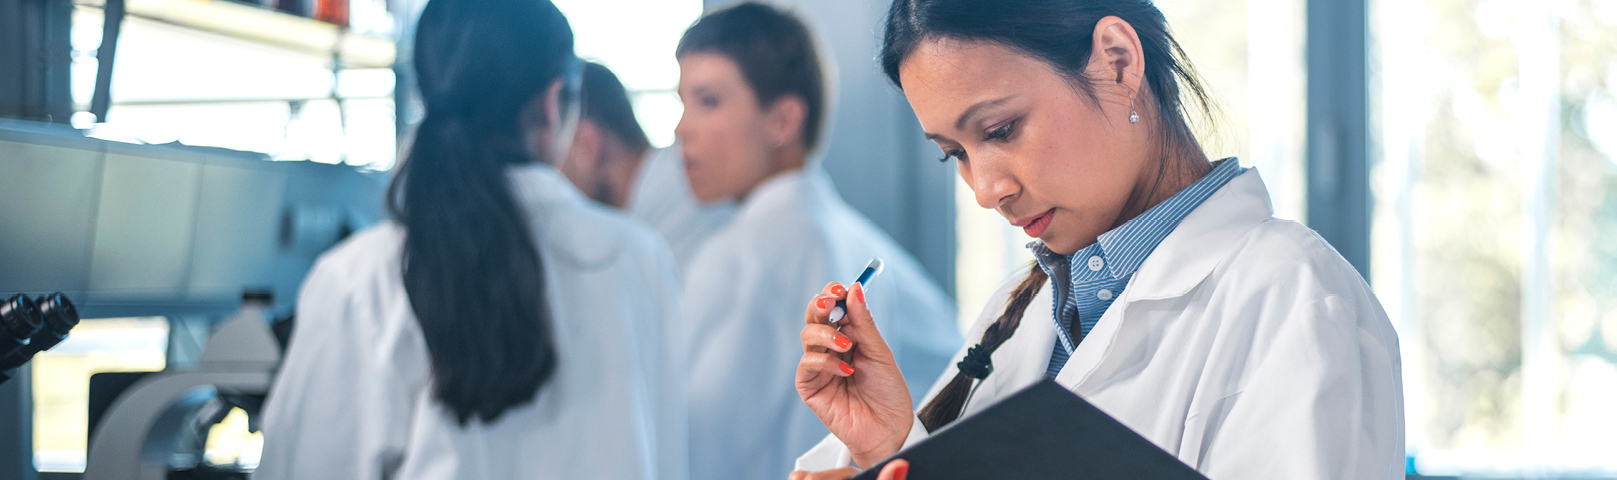 a latino woman in a lab coat reviews her clip board carefully just next to a microscope in a lab